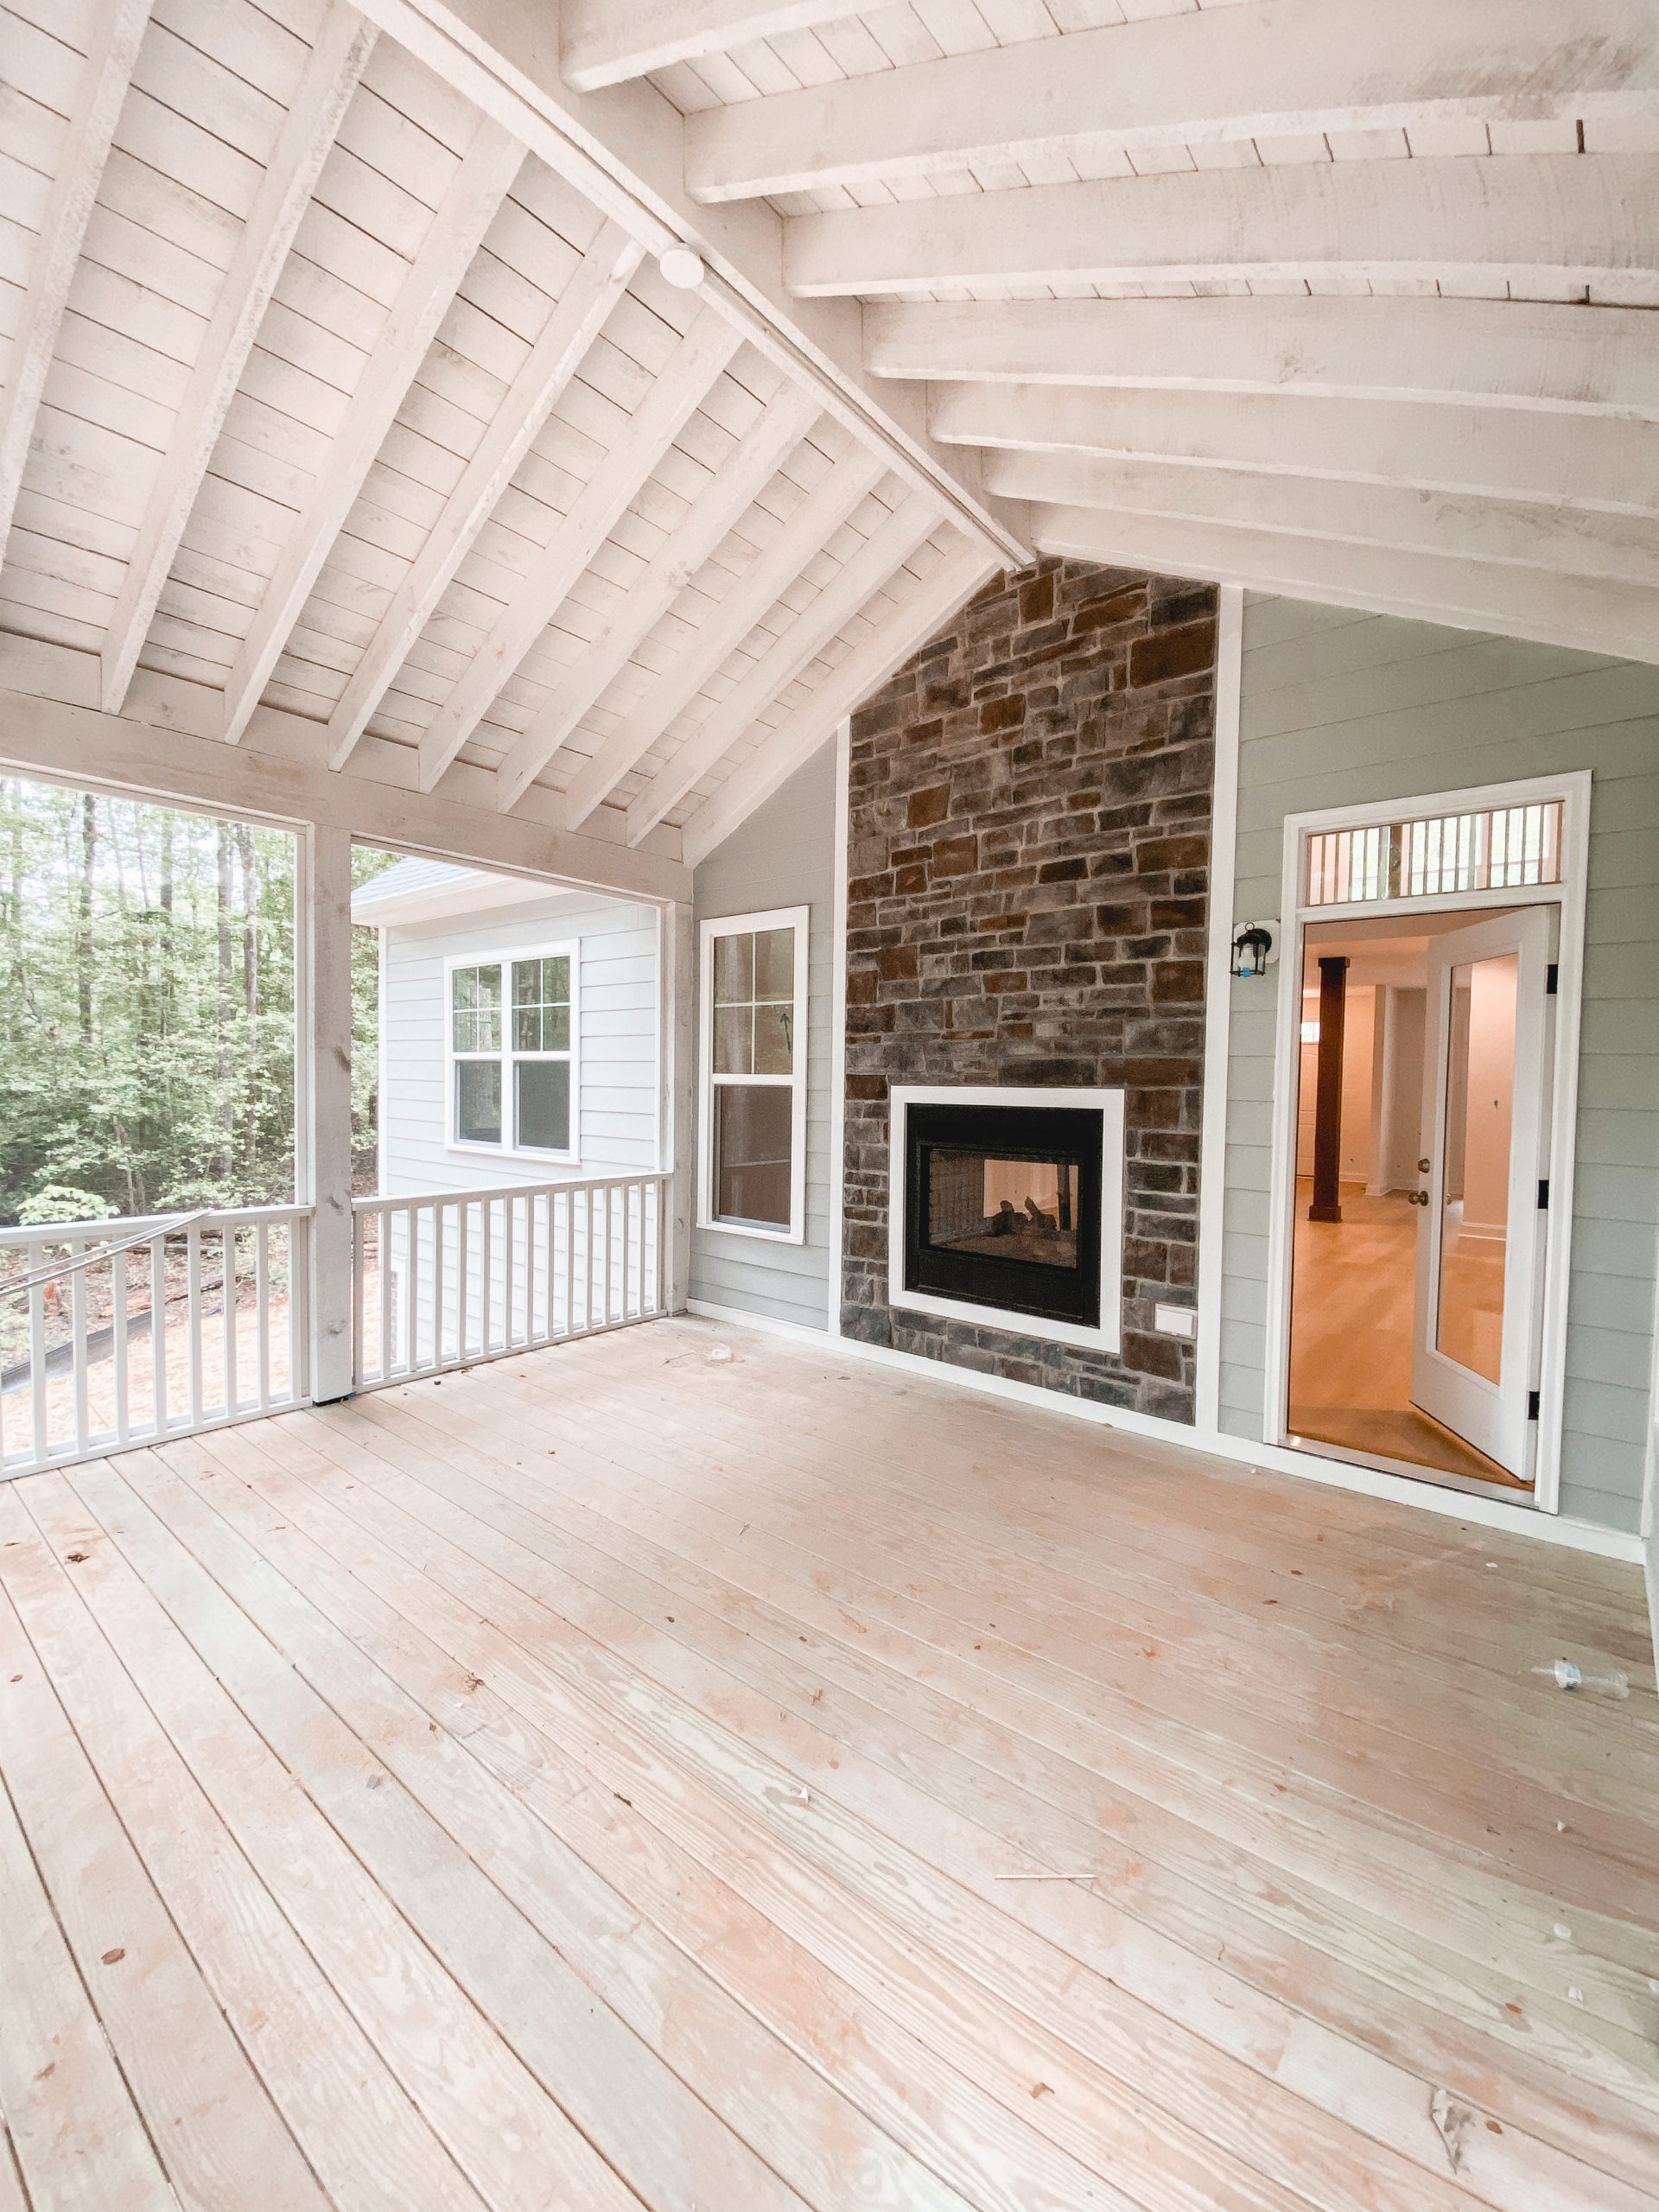 Virginia blogger, Lauren Dix, shares her screened in porch with stone fireplace in her outdoor furniture inspiration post!